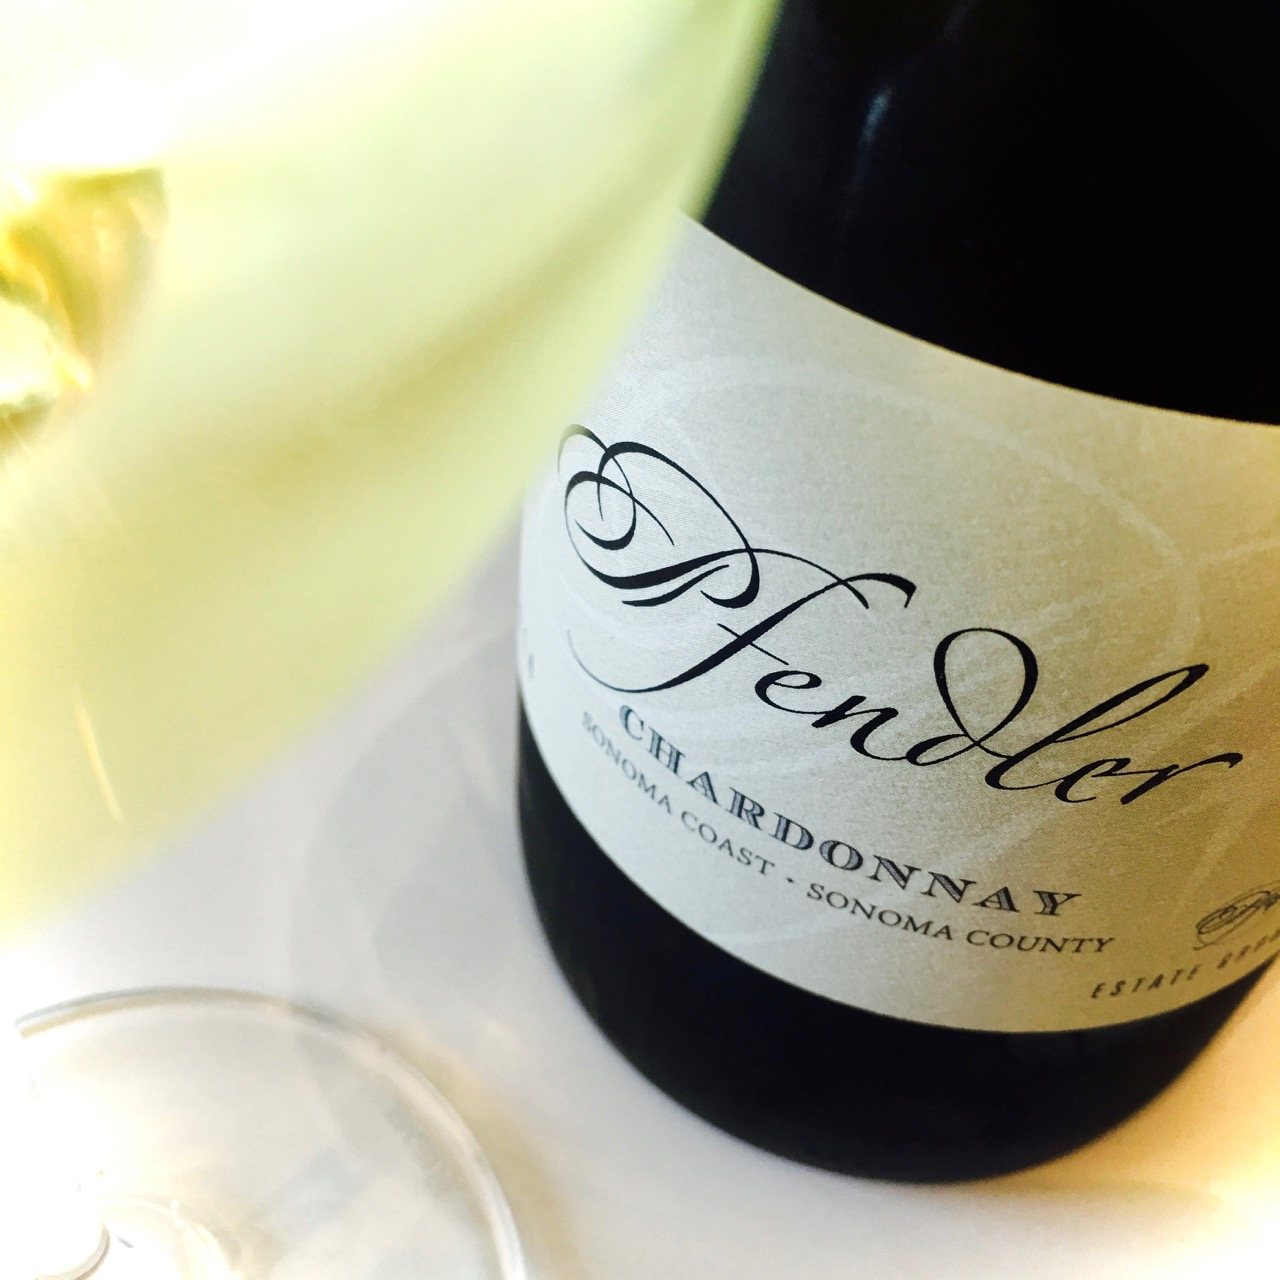 2014 Pfendler Vineyards Chardonnay Sonoma Coast, Sonoma County